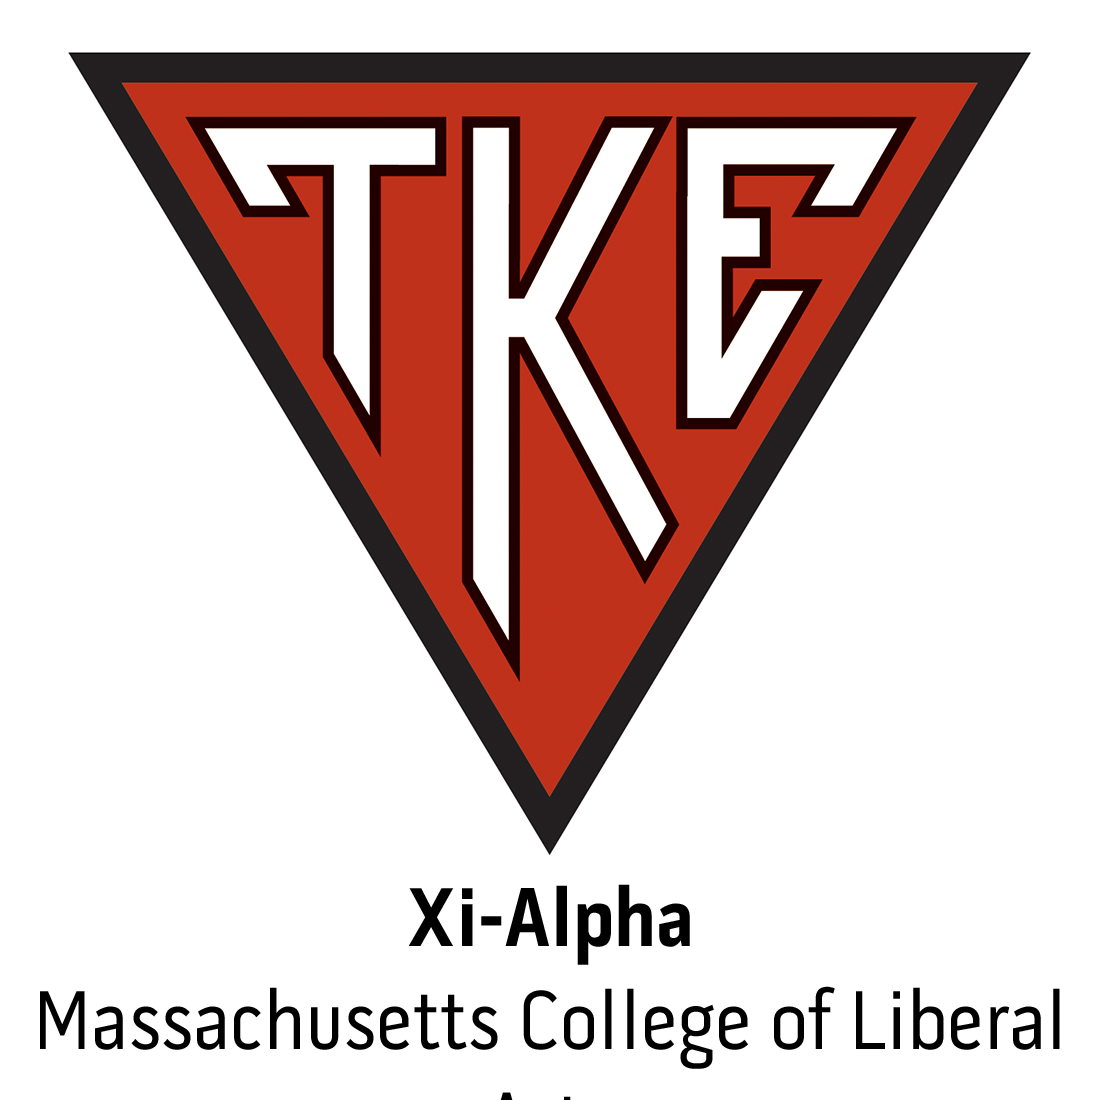 Xi-Alpha Chapter at Massachusetts College of Liberal Arts